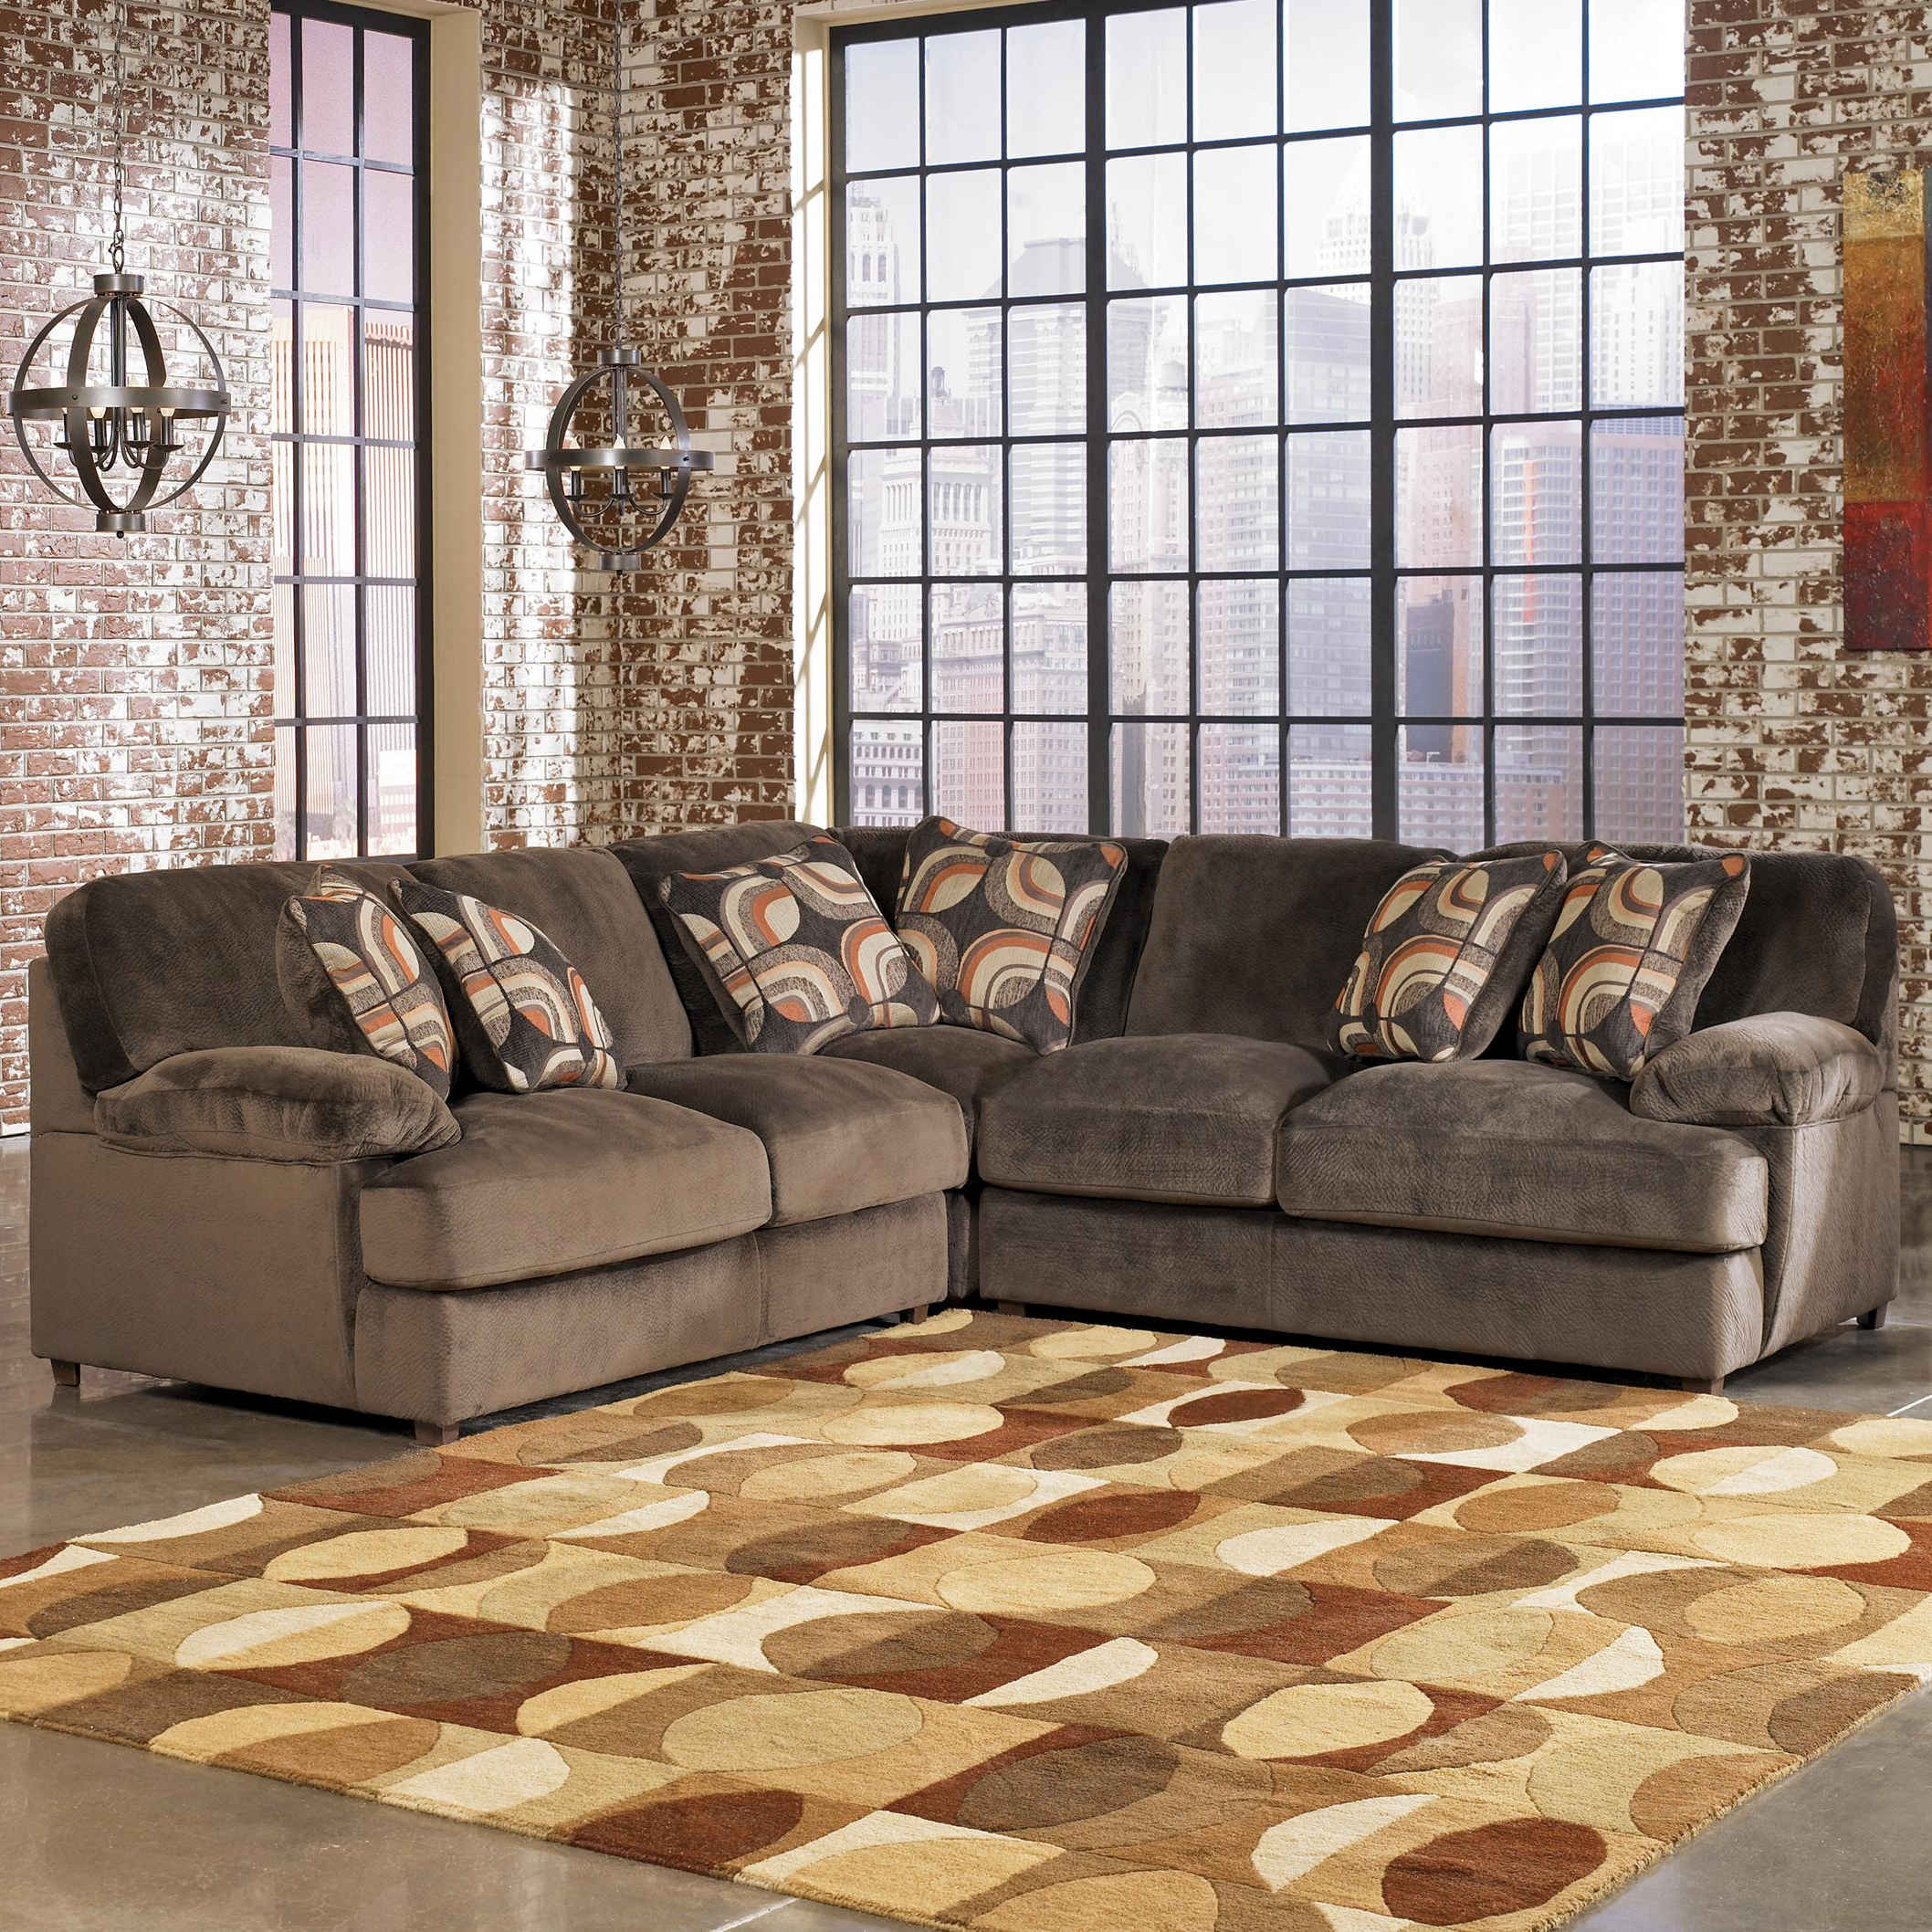 Signature Designashley Truscotti – Cafe Contemporary 3 Piece Pertaining To Most Up To Date Blaine 3 Piece Sectionals (View 13 of 20)